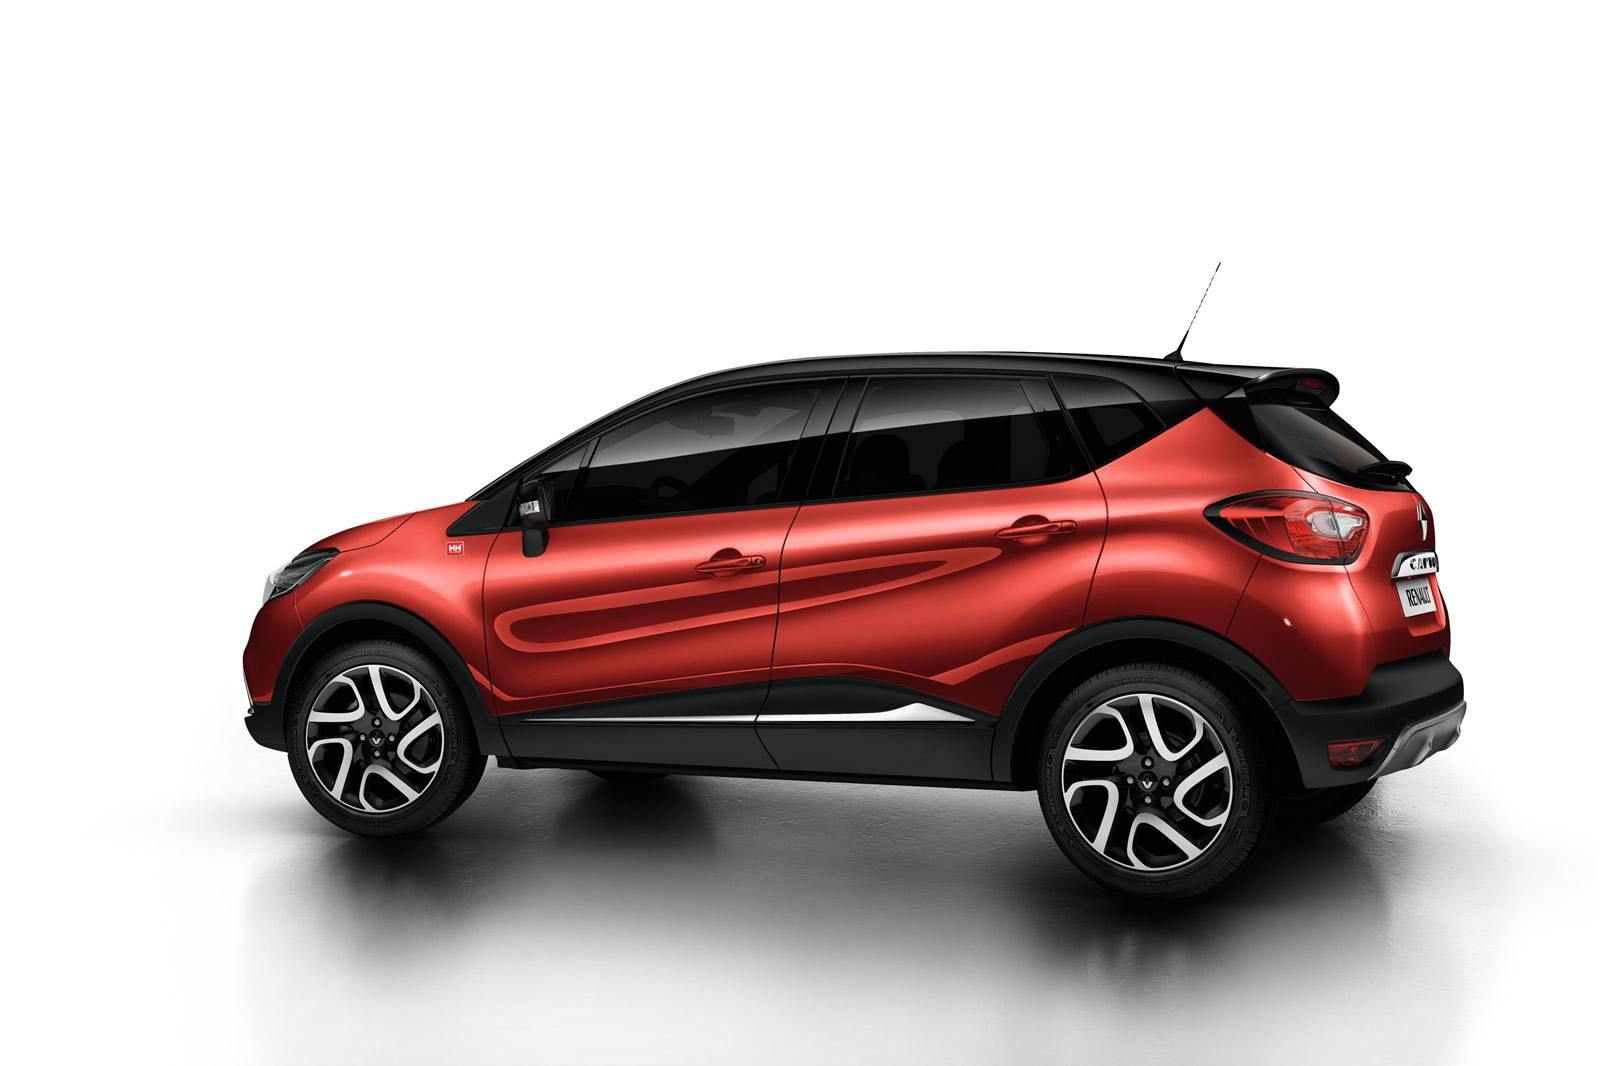 renault captur helly hansen limited edition fcia french cars in america. Black Bedroom Furniture Sets. Home Design Ideas